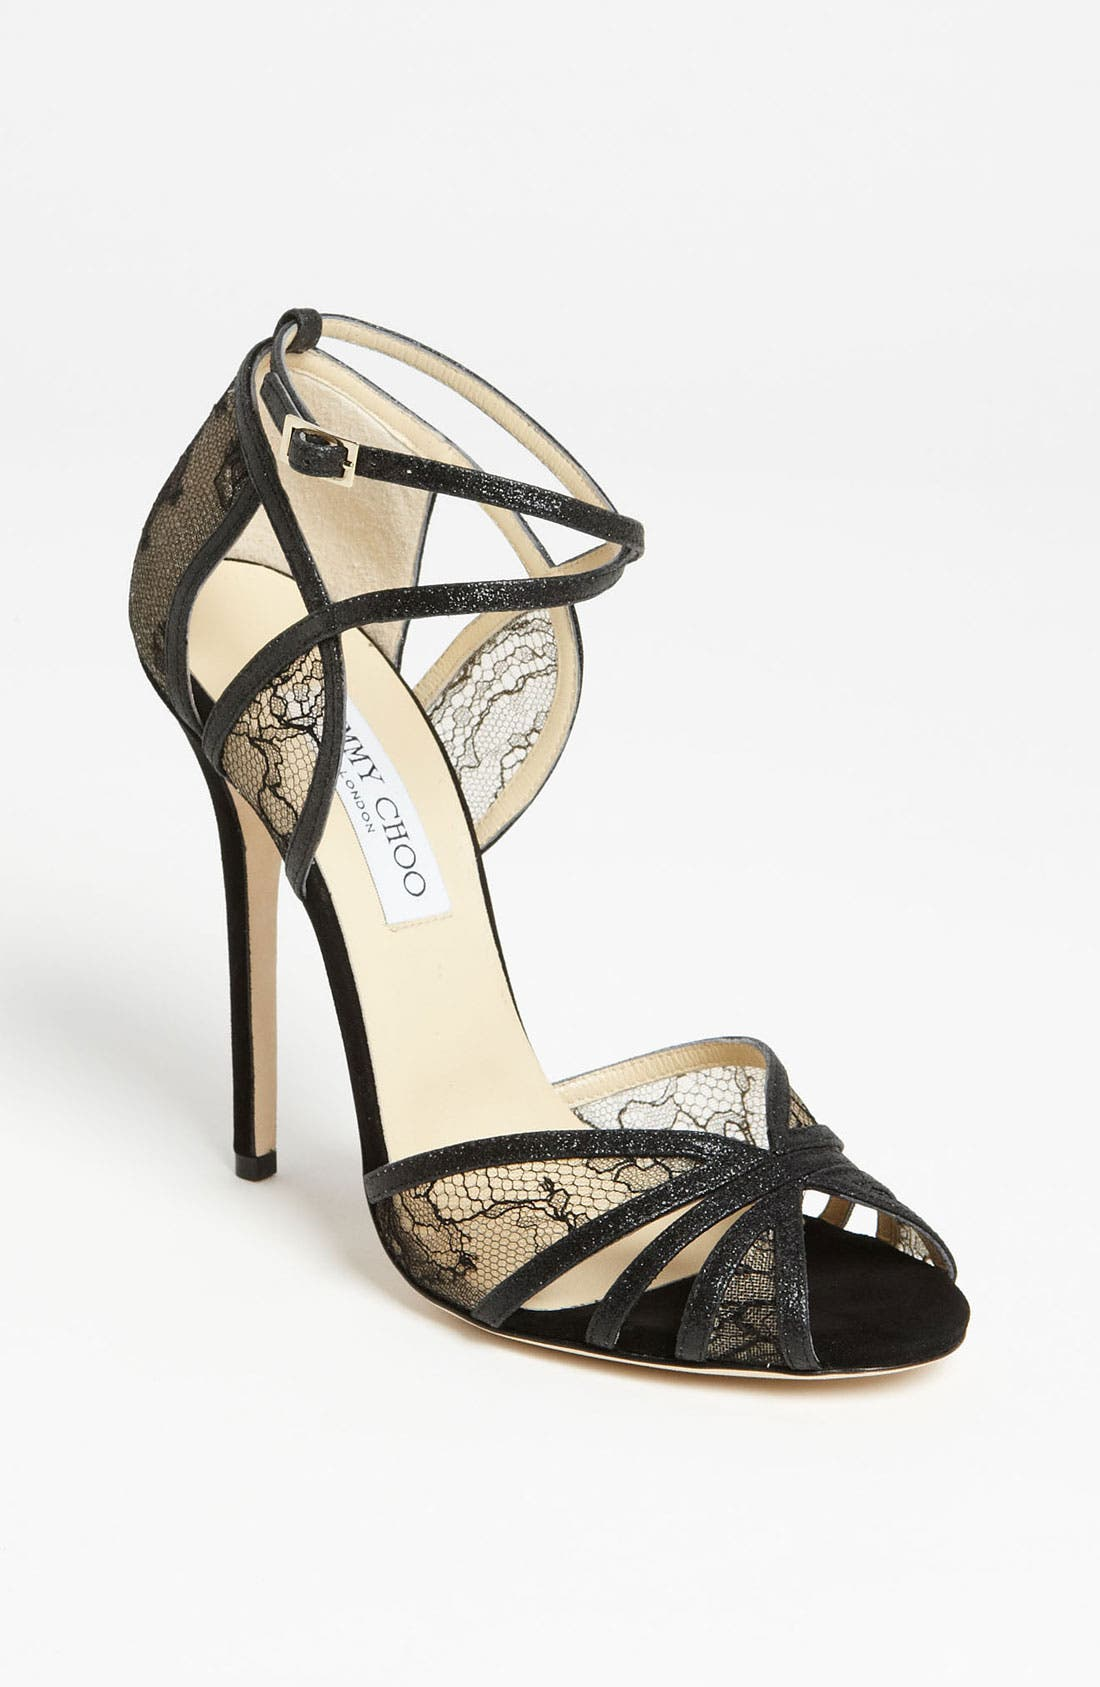 Alternate Image 1 Selected - Jimmy Choo 'Fitch' Sandal